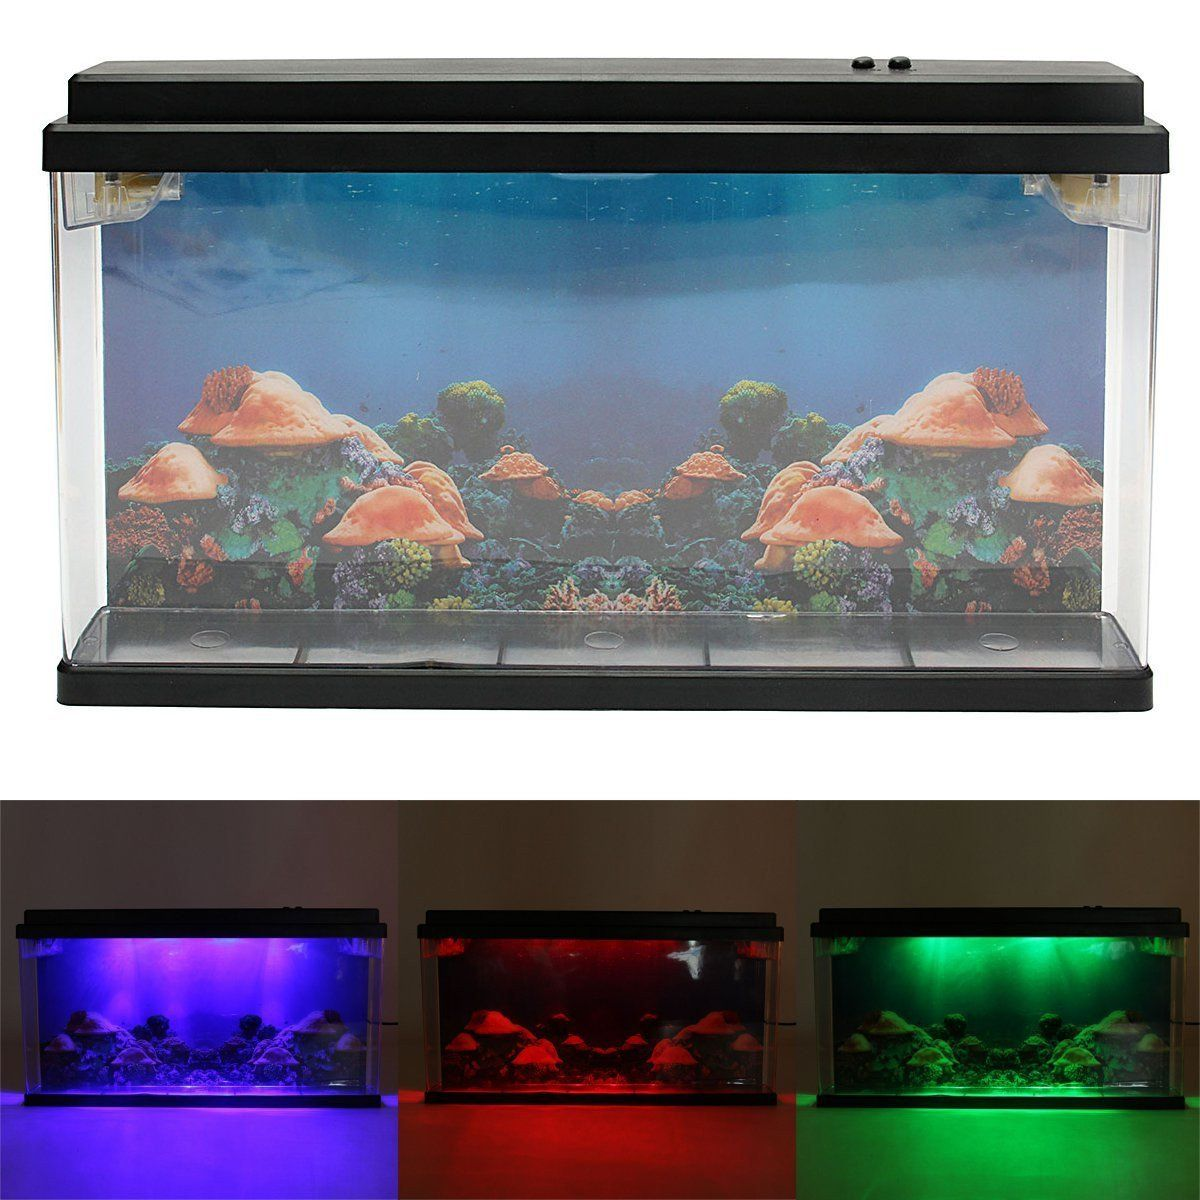 Caveen moving jelly fish tank with led lights d backing fantastic